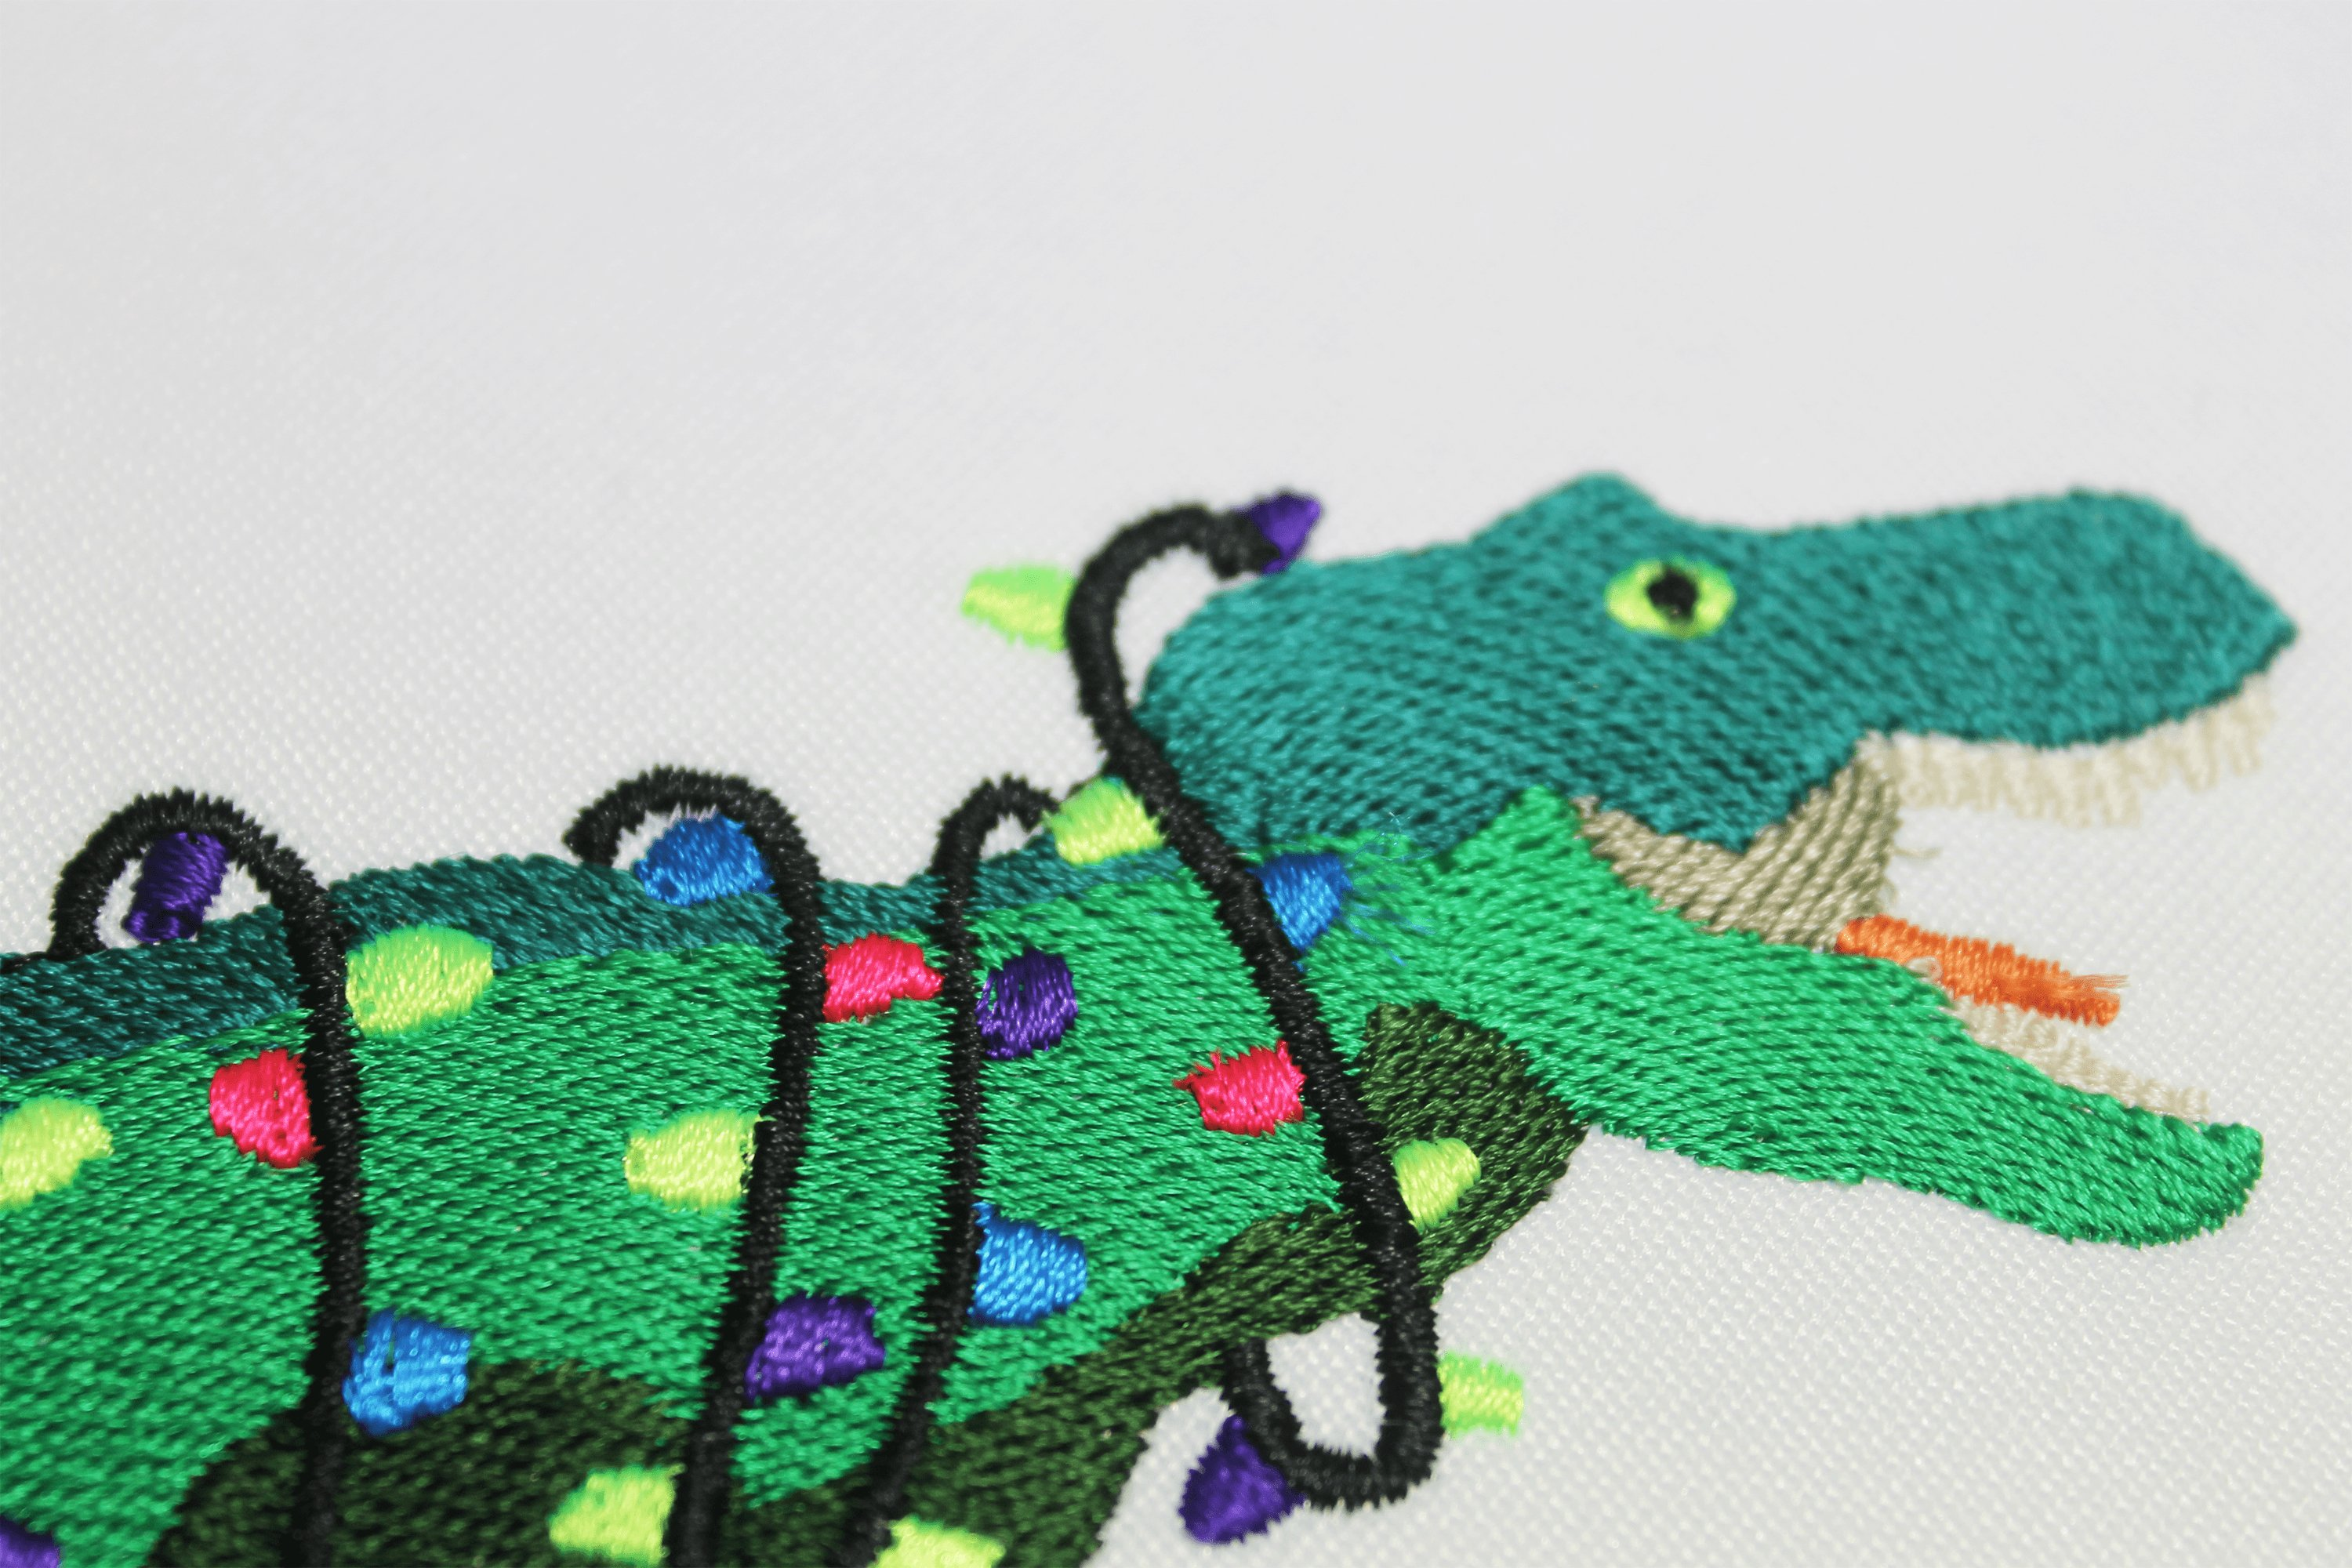 Christmas T-rex Embroidery 5 sizes, Tree-Rex with Lights example image 2